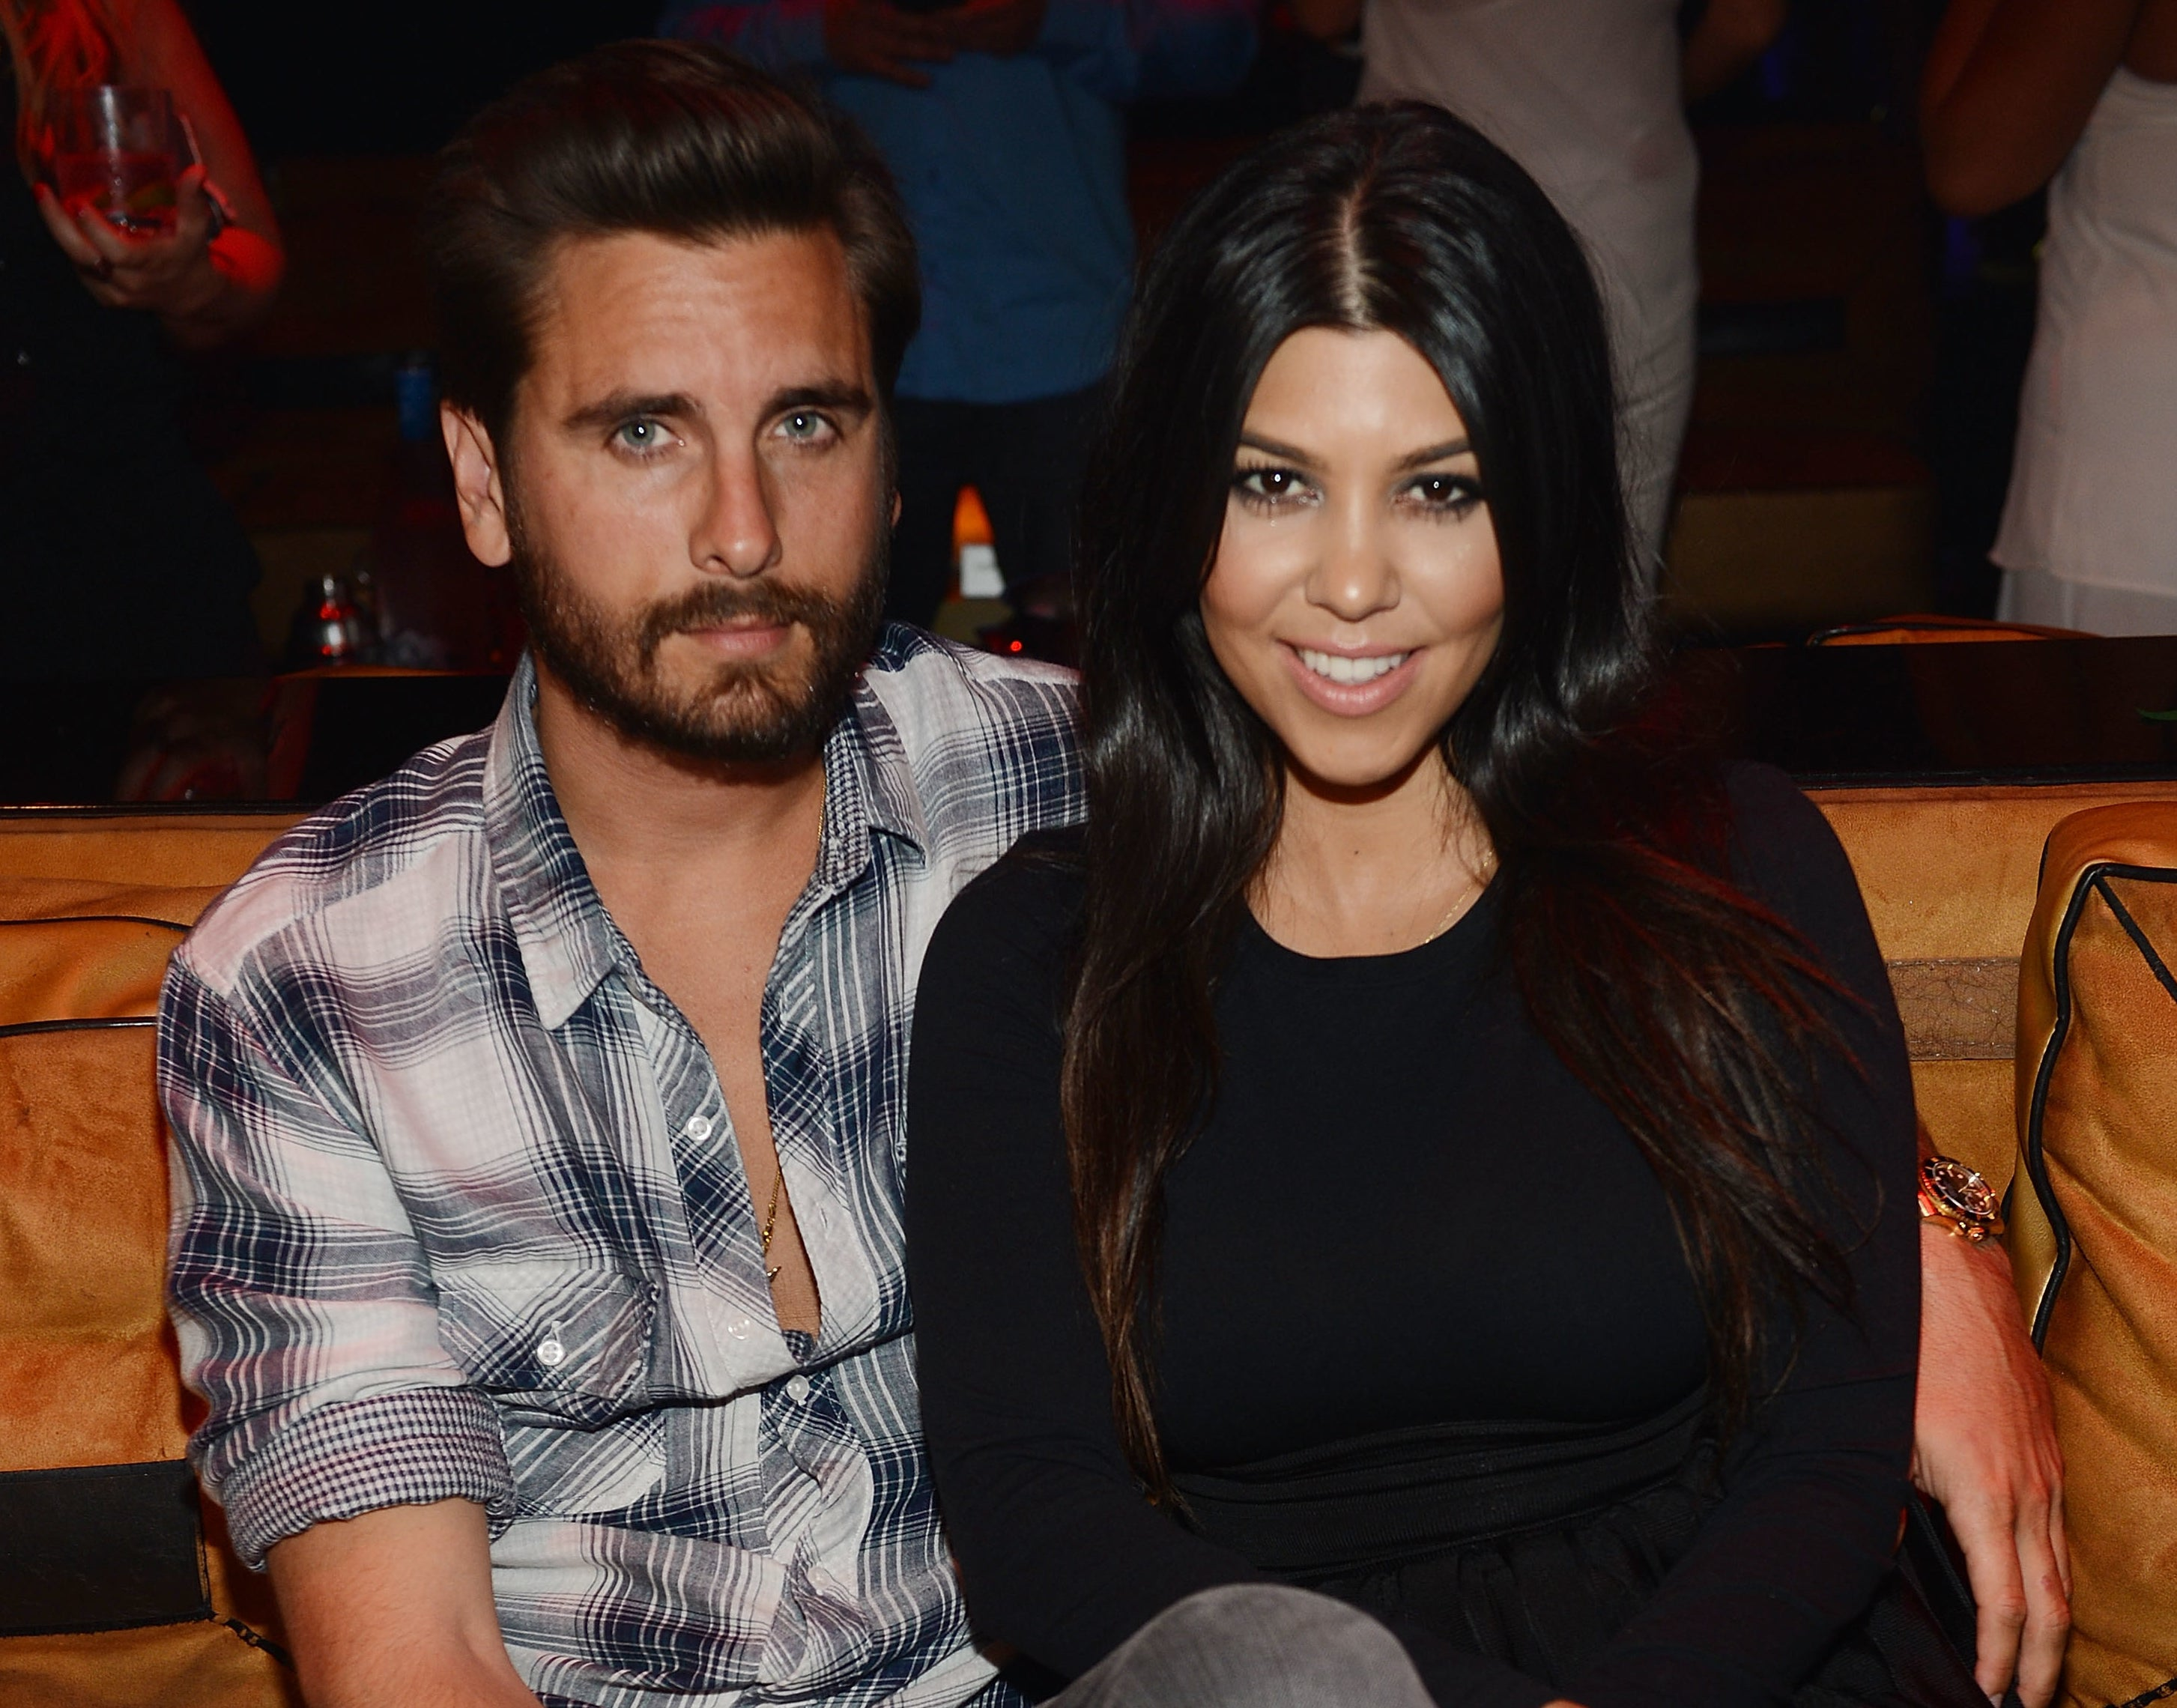 Scott and Kourtney smile while sitting next to each other in an old photo